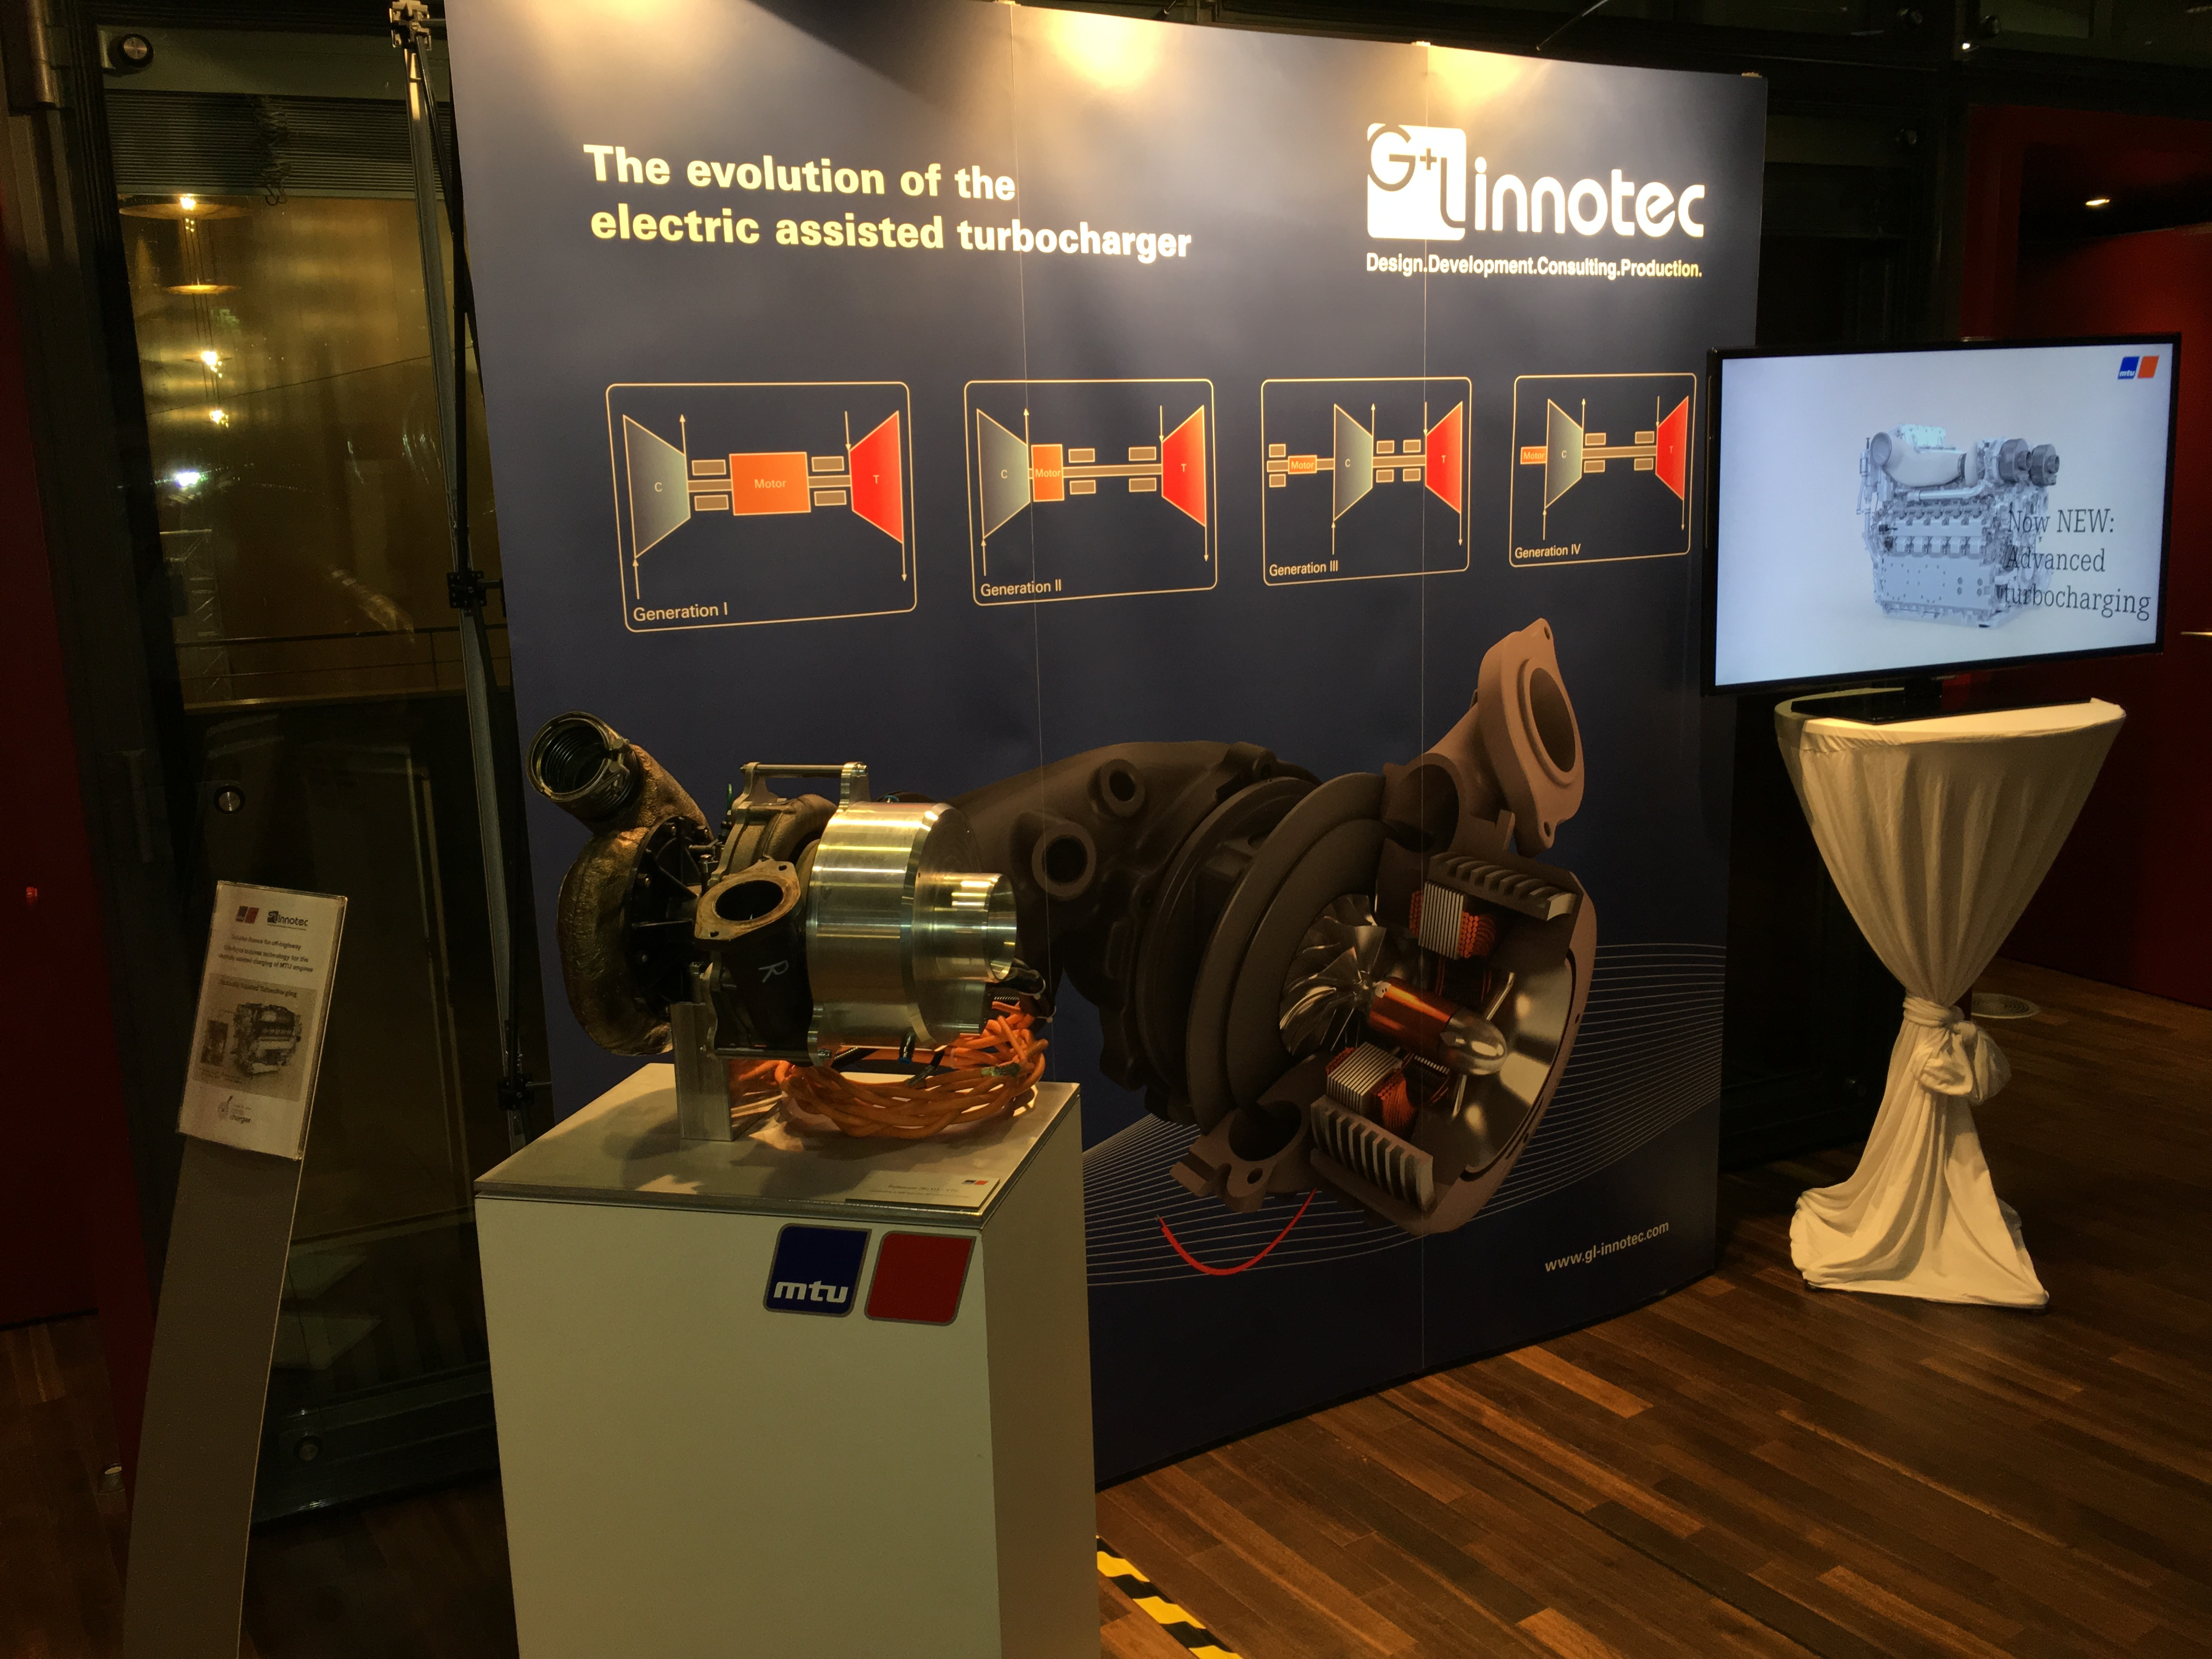 Booth of G+L innotec GmbH